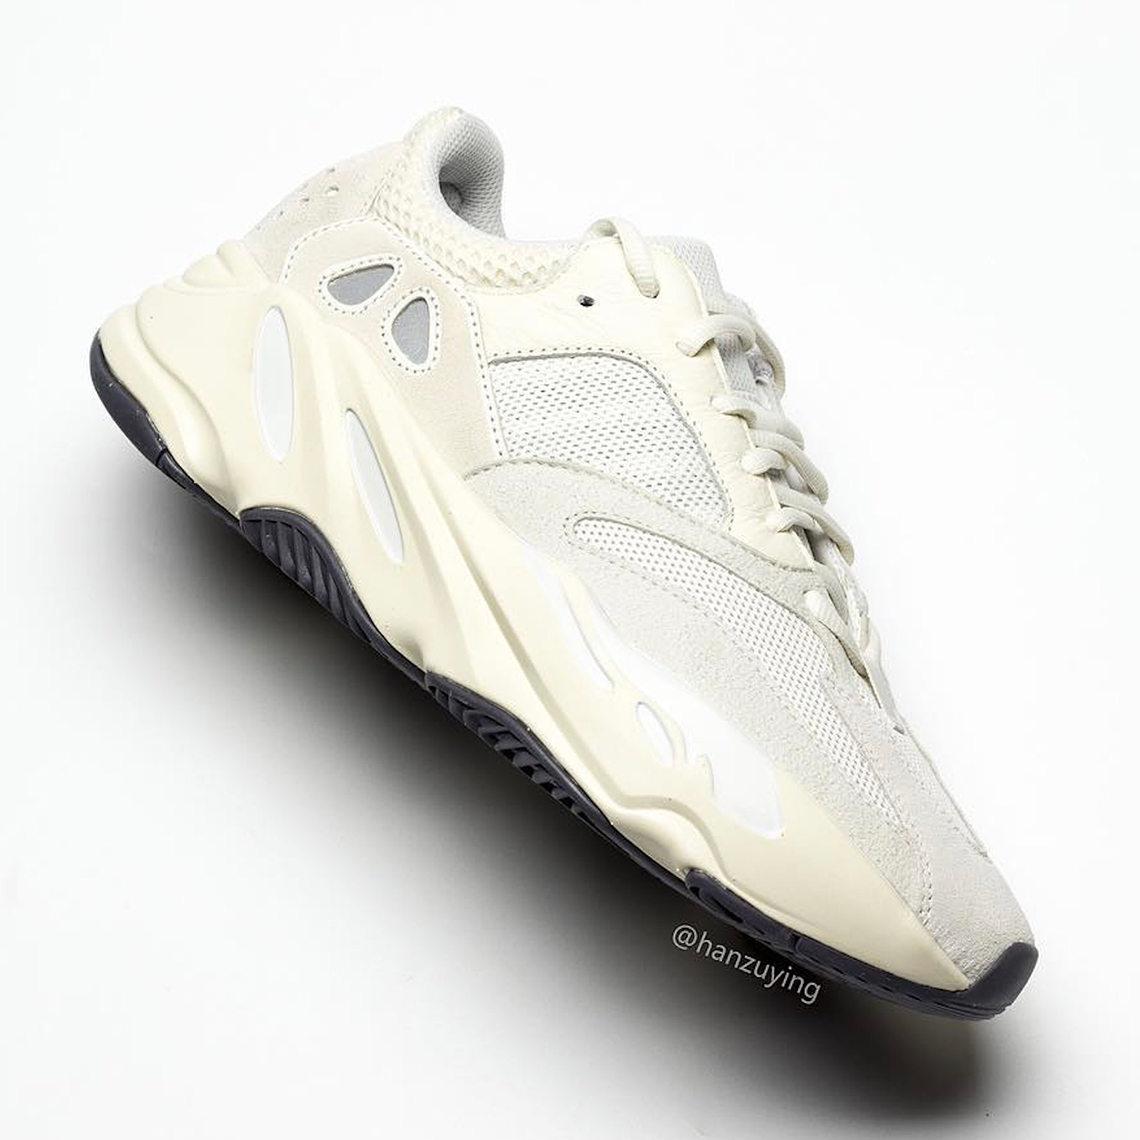 best website 9af44 9a1fb adidas Yeezy Boost 700 Analog EG7596 Release Info   SneakerNews.com